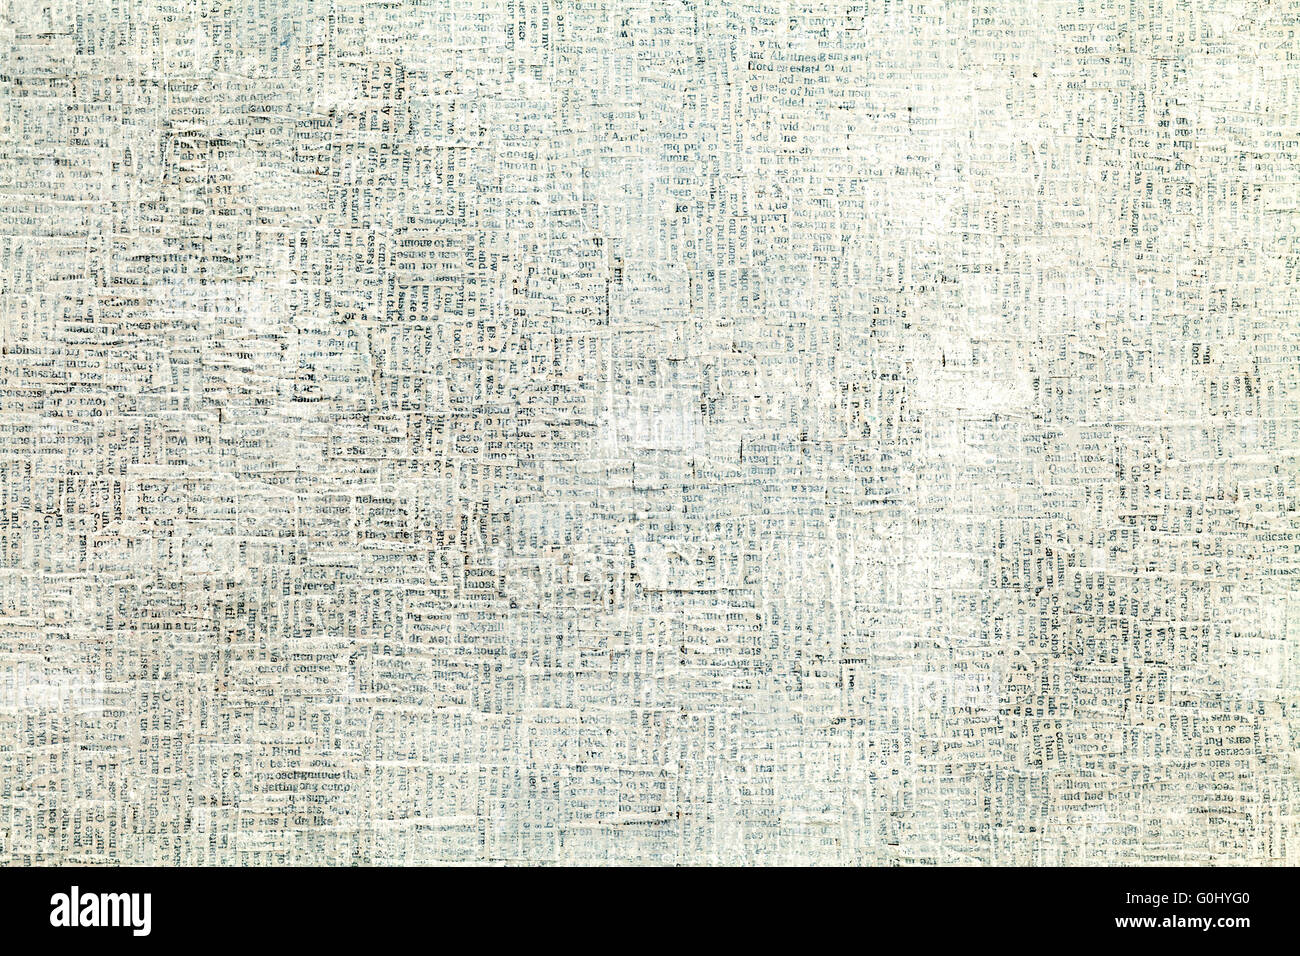 grunge abstract newspaper background design stock photos & grunge